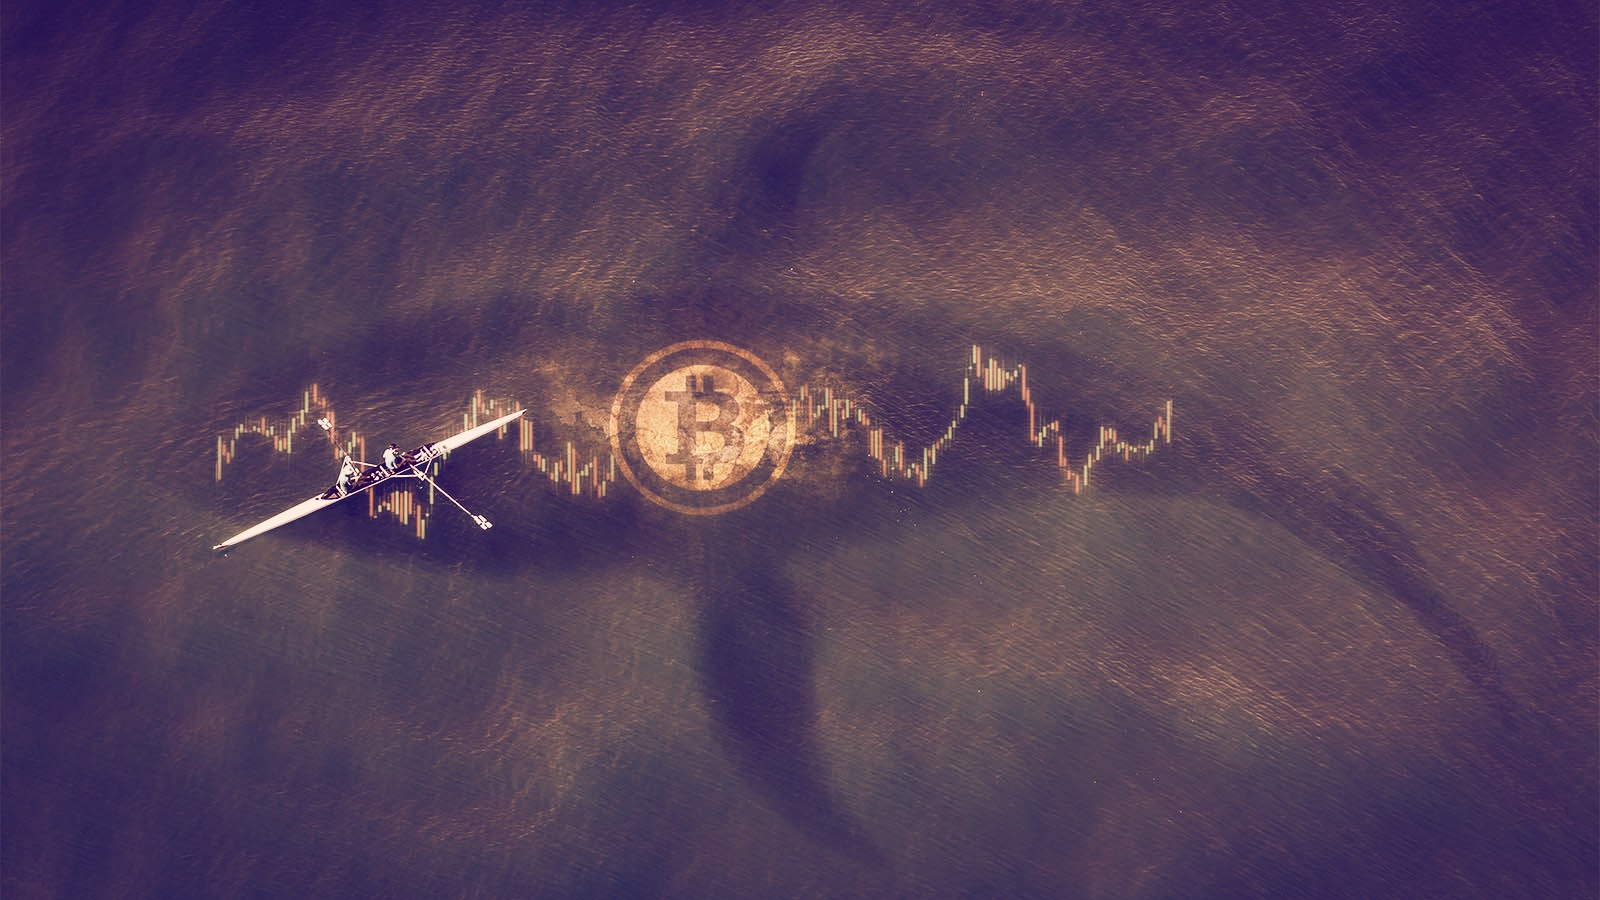 Bitcoin Whales Are Dwindling: What Does That Mean for the Market?